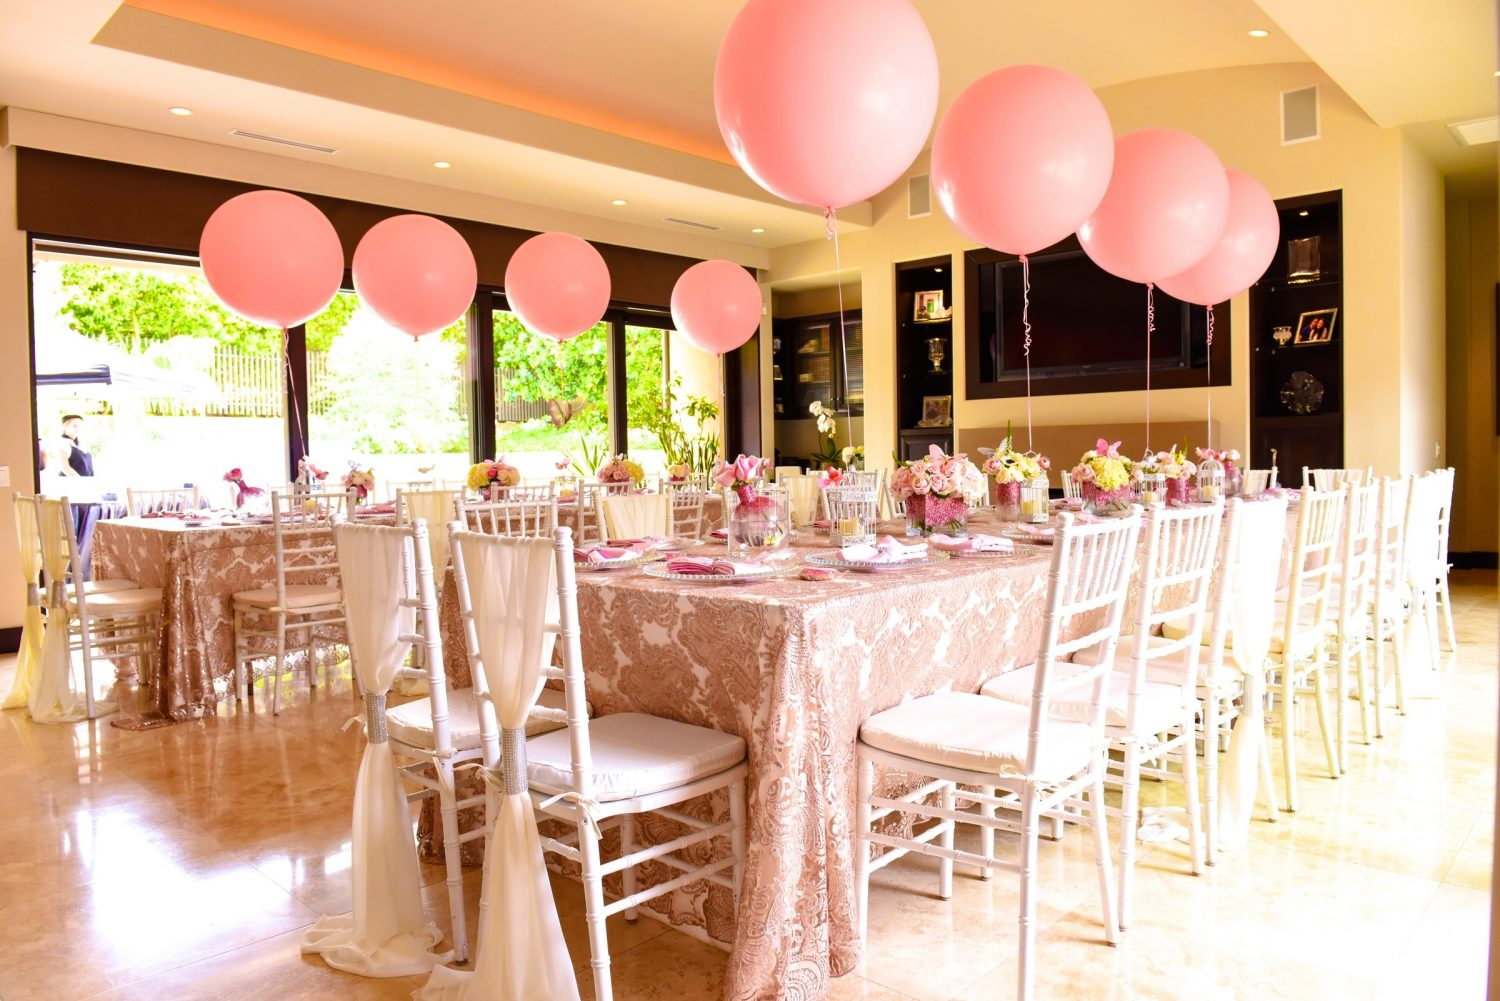 girl baby shower - how to plan 1